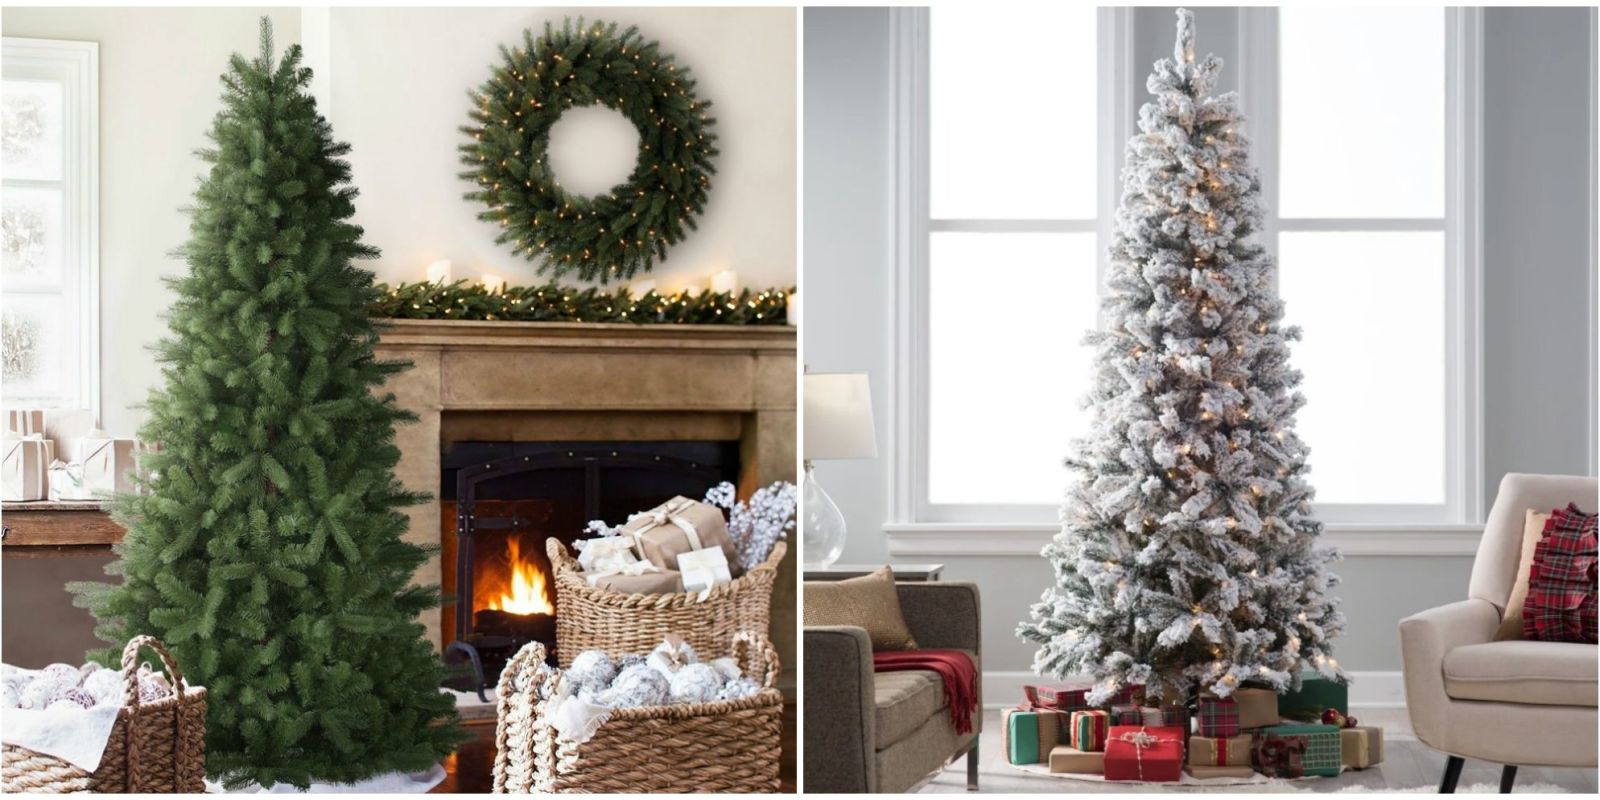 Where To Place A Christmas Tree - Home Design